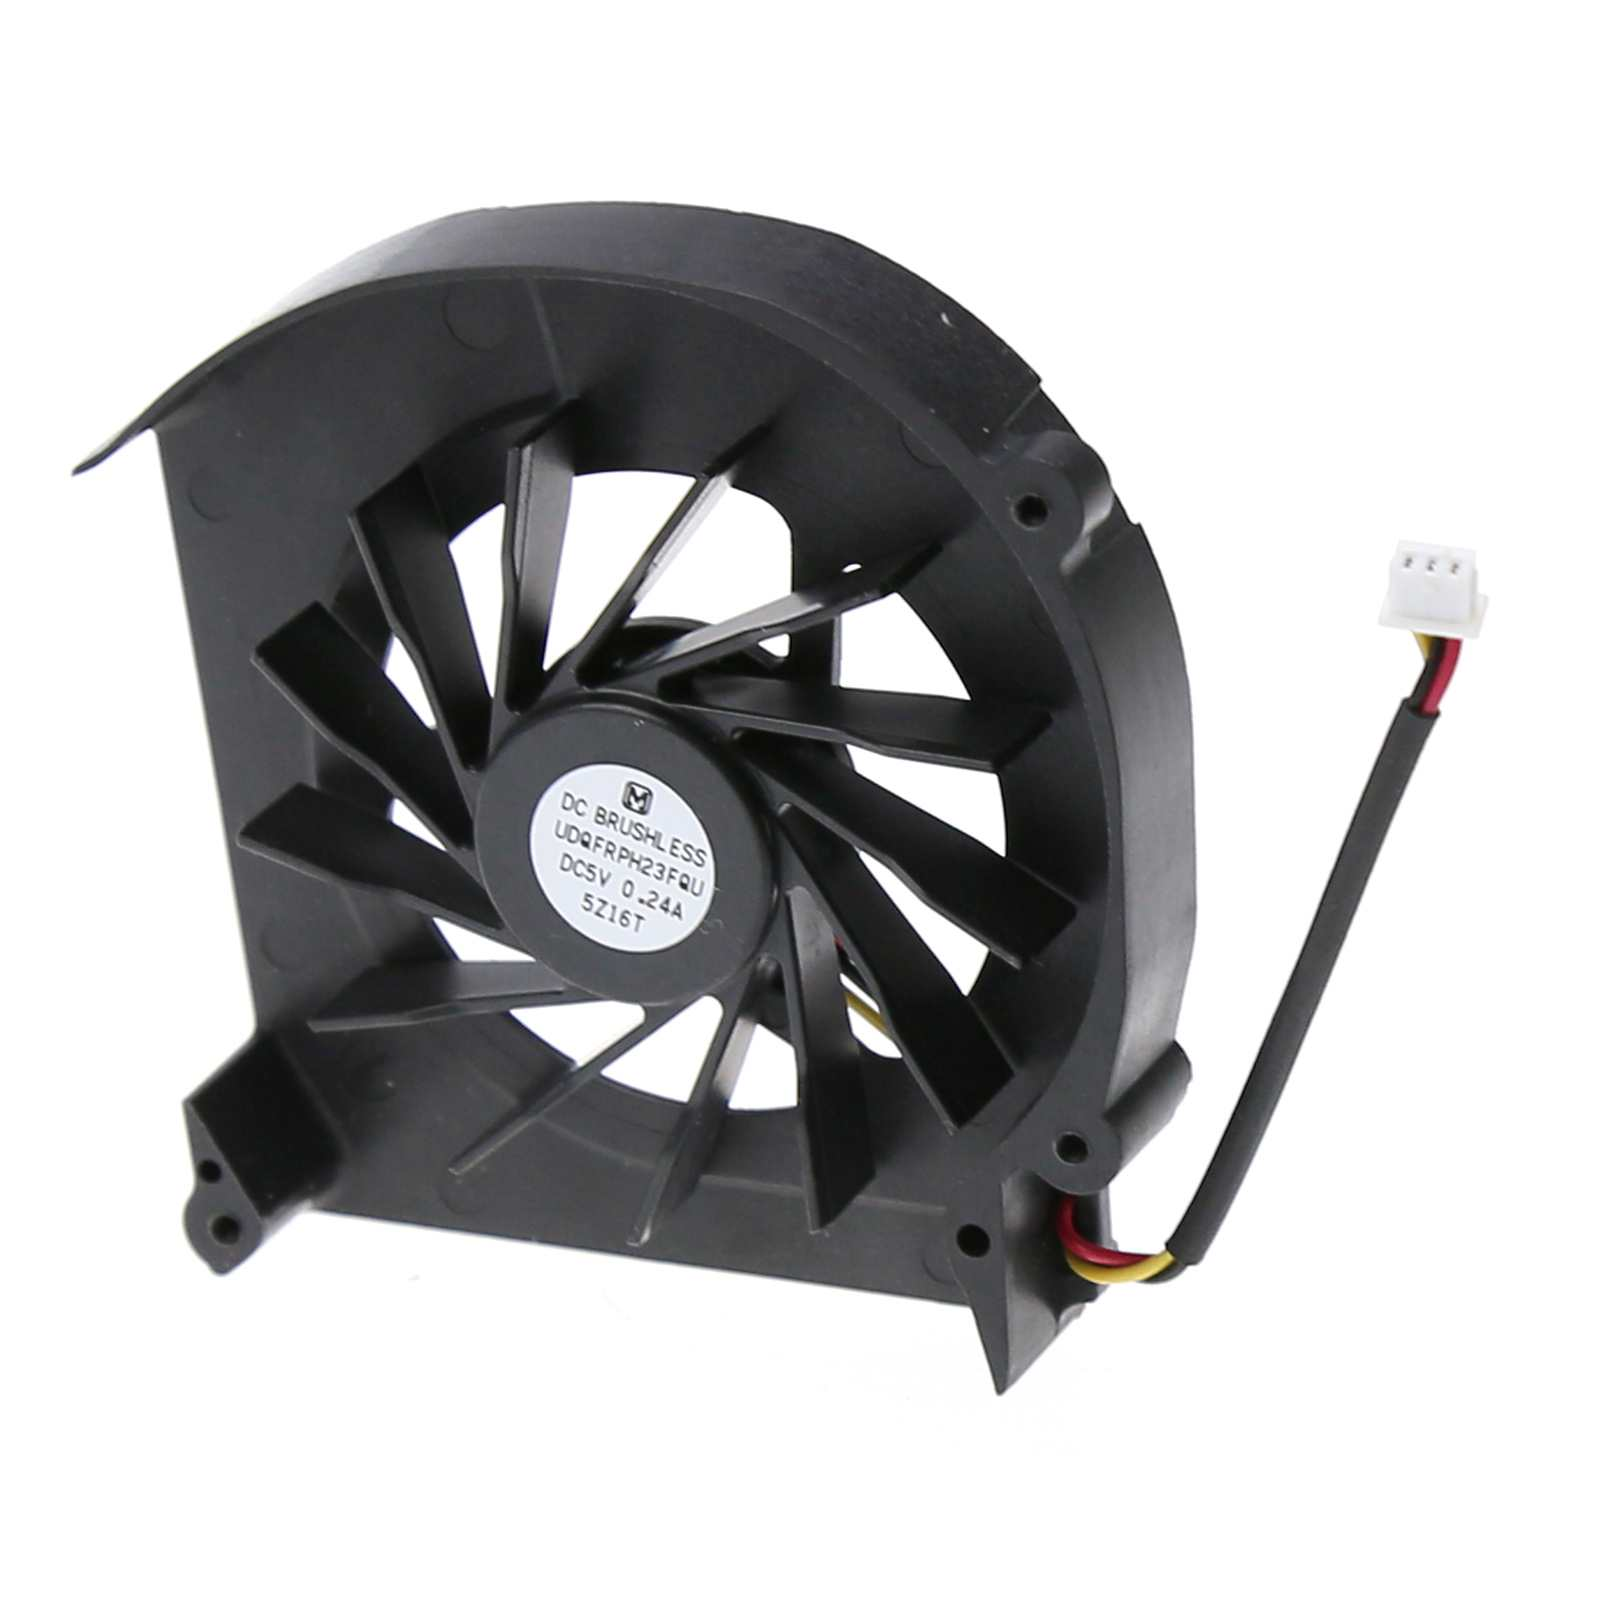 New Laptop CPU Cooling Fan for IBM Thinkpad Z60M Z61M CPU Cooler Fan Best Quality GHMY